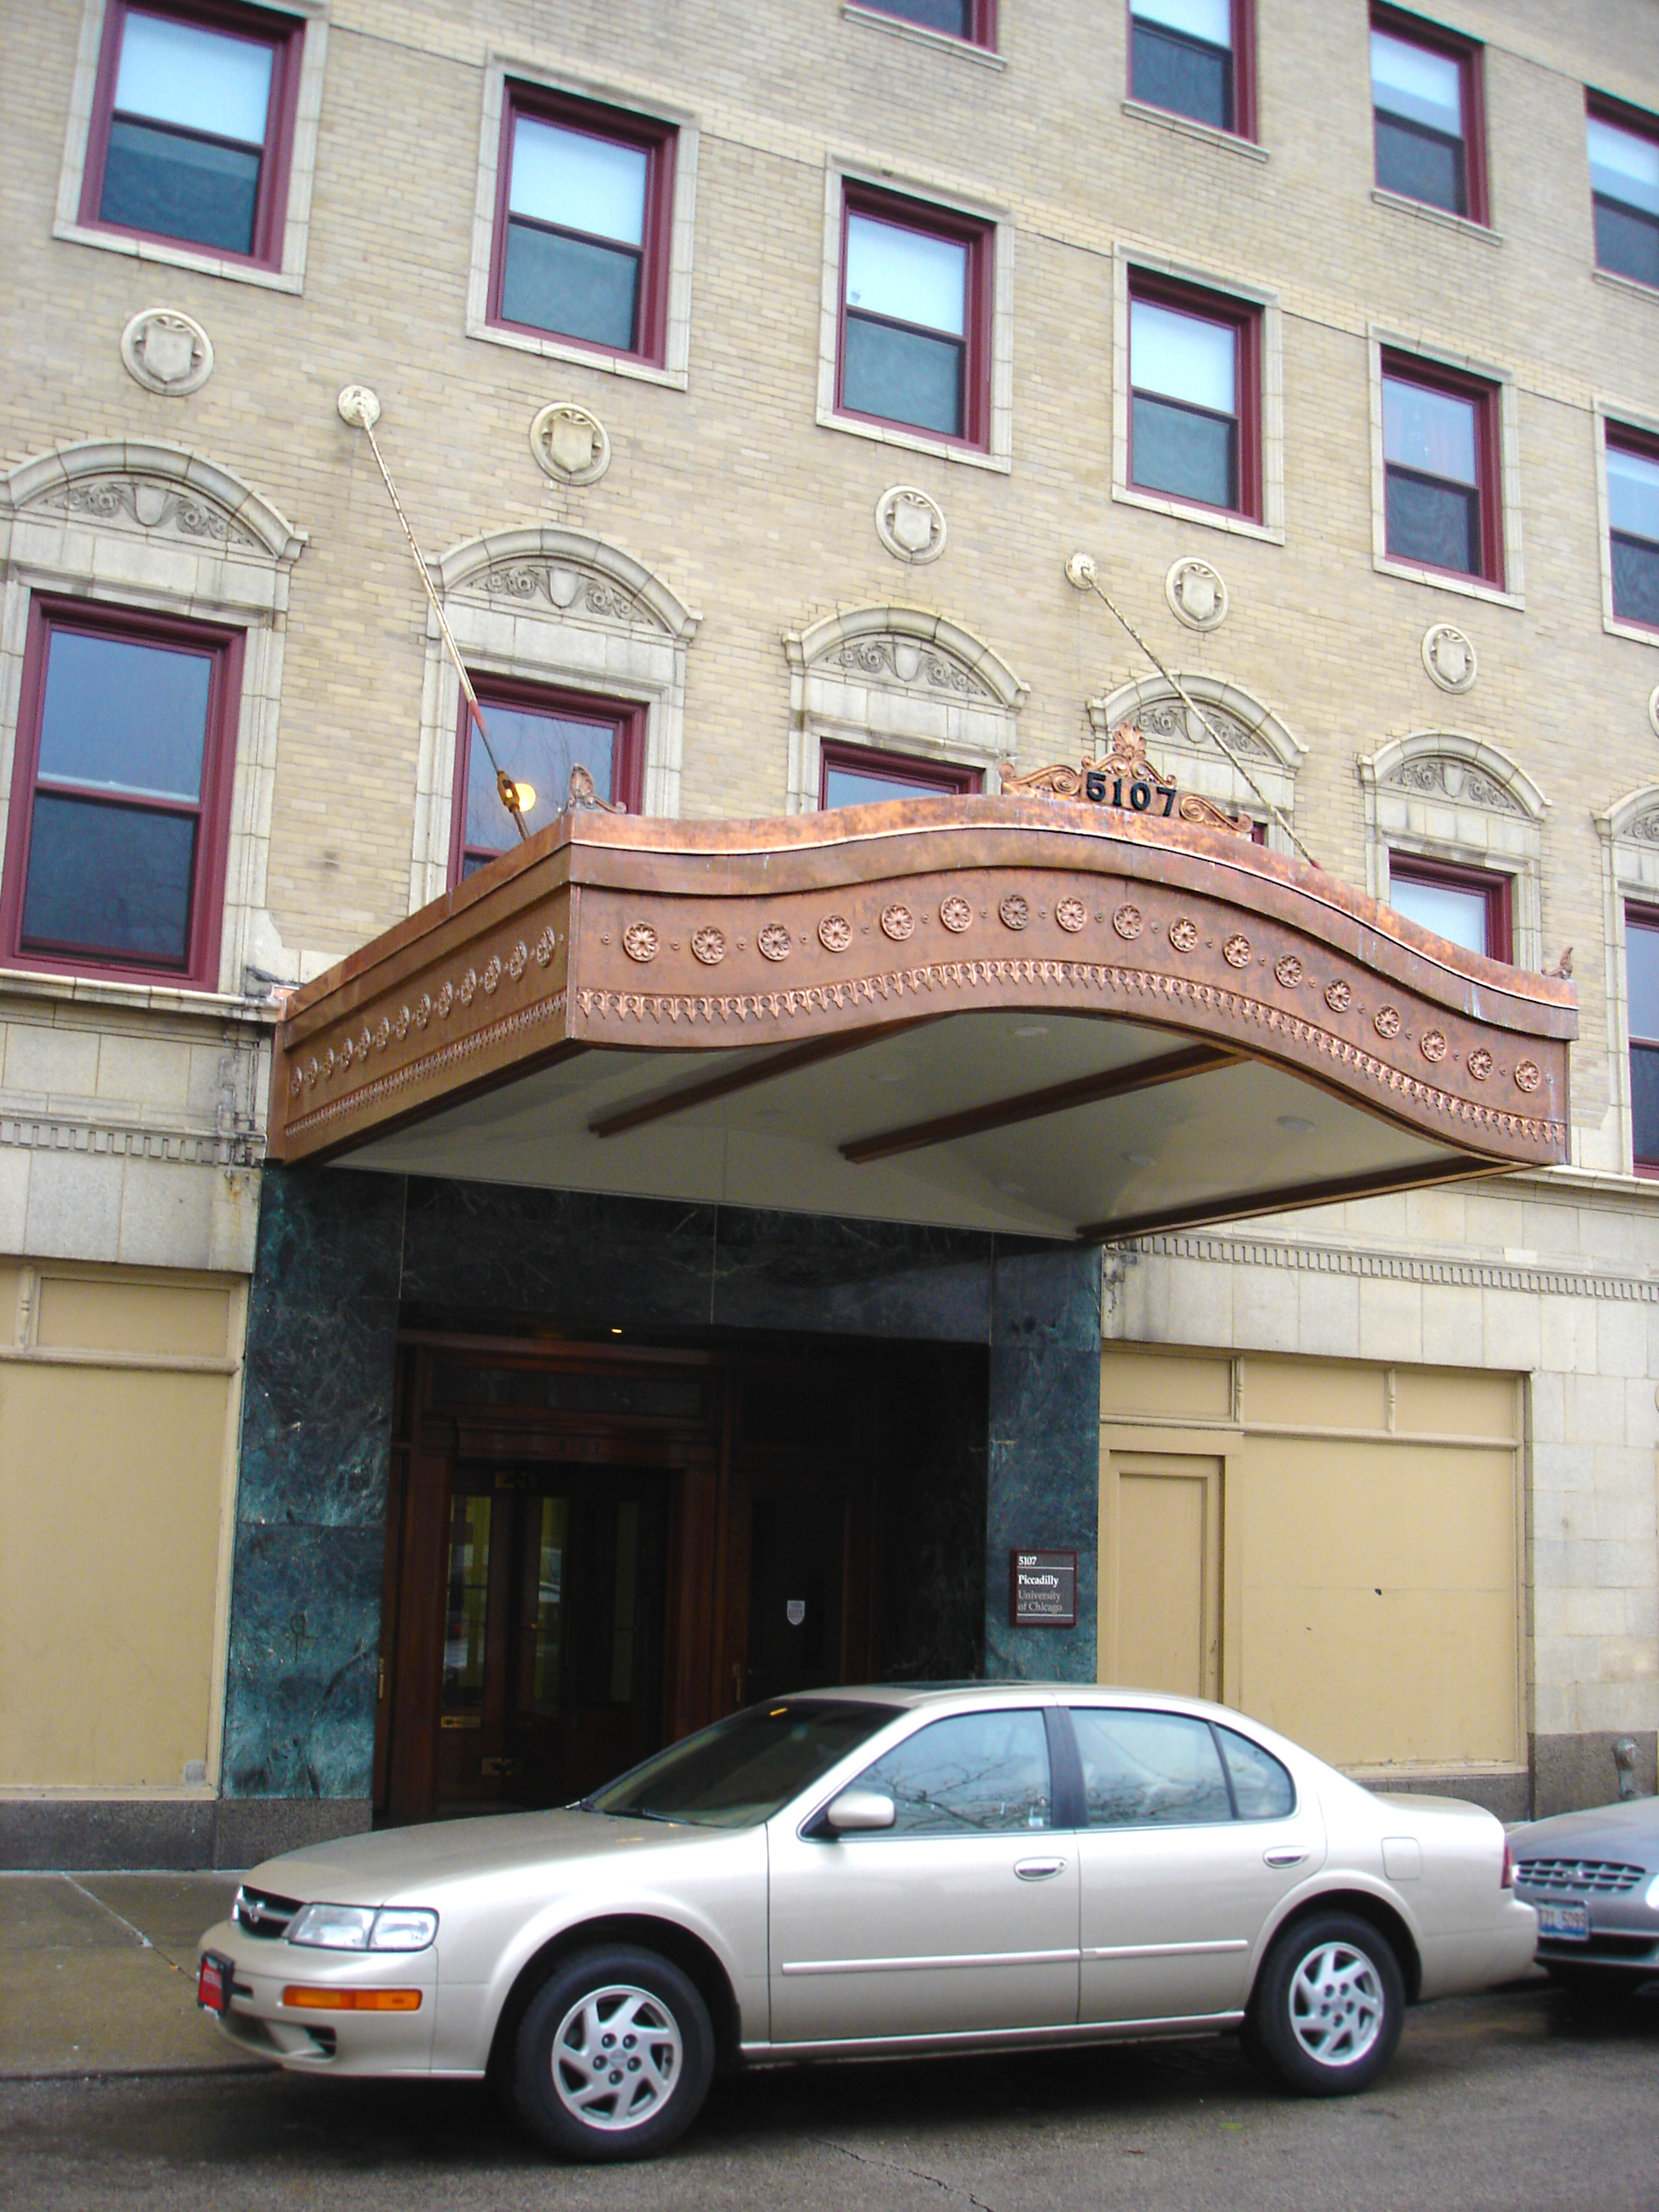 custom renovation, commercial design, redesign historic building entrance canopy, copper, historic restoration